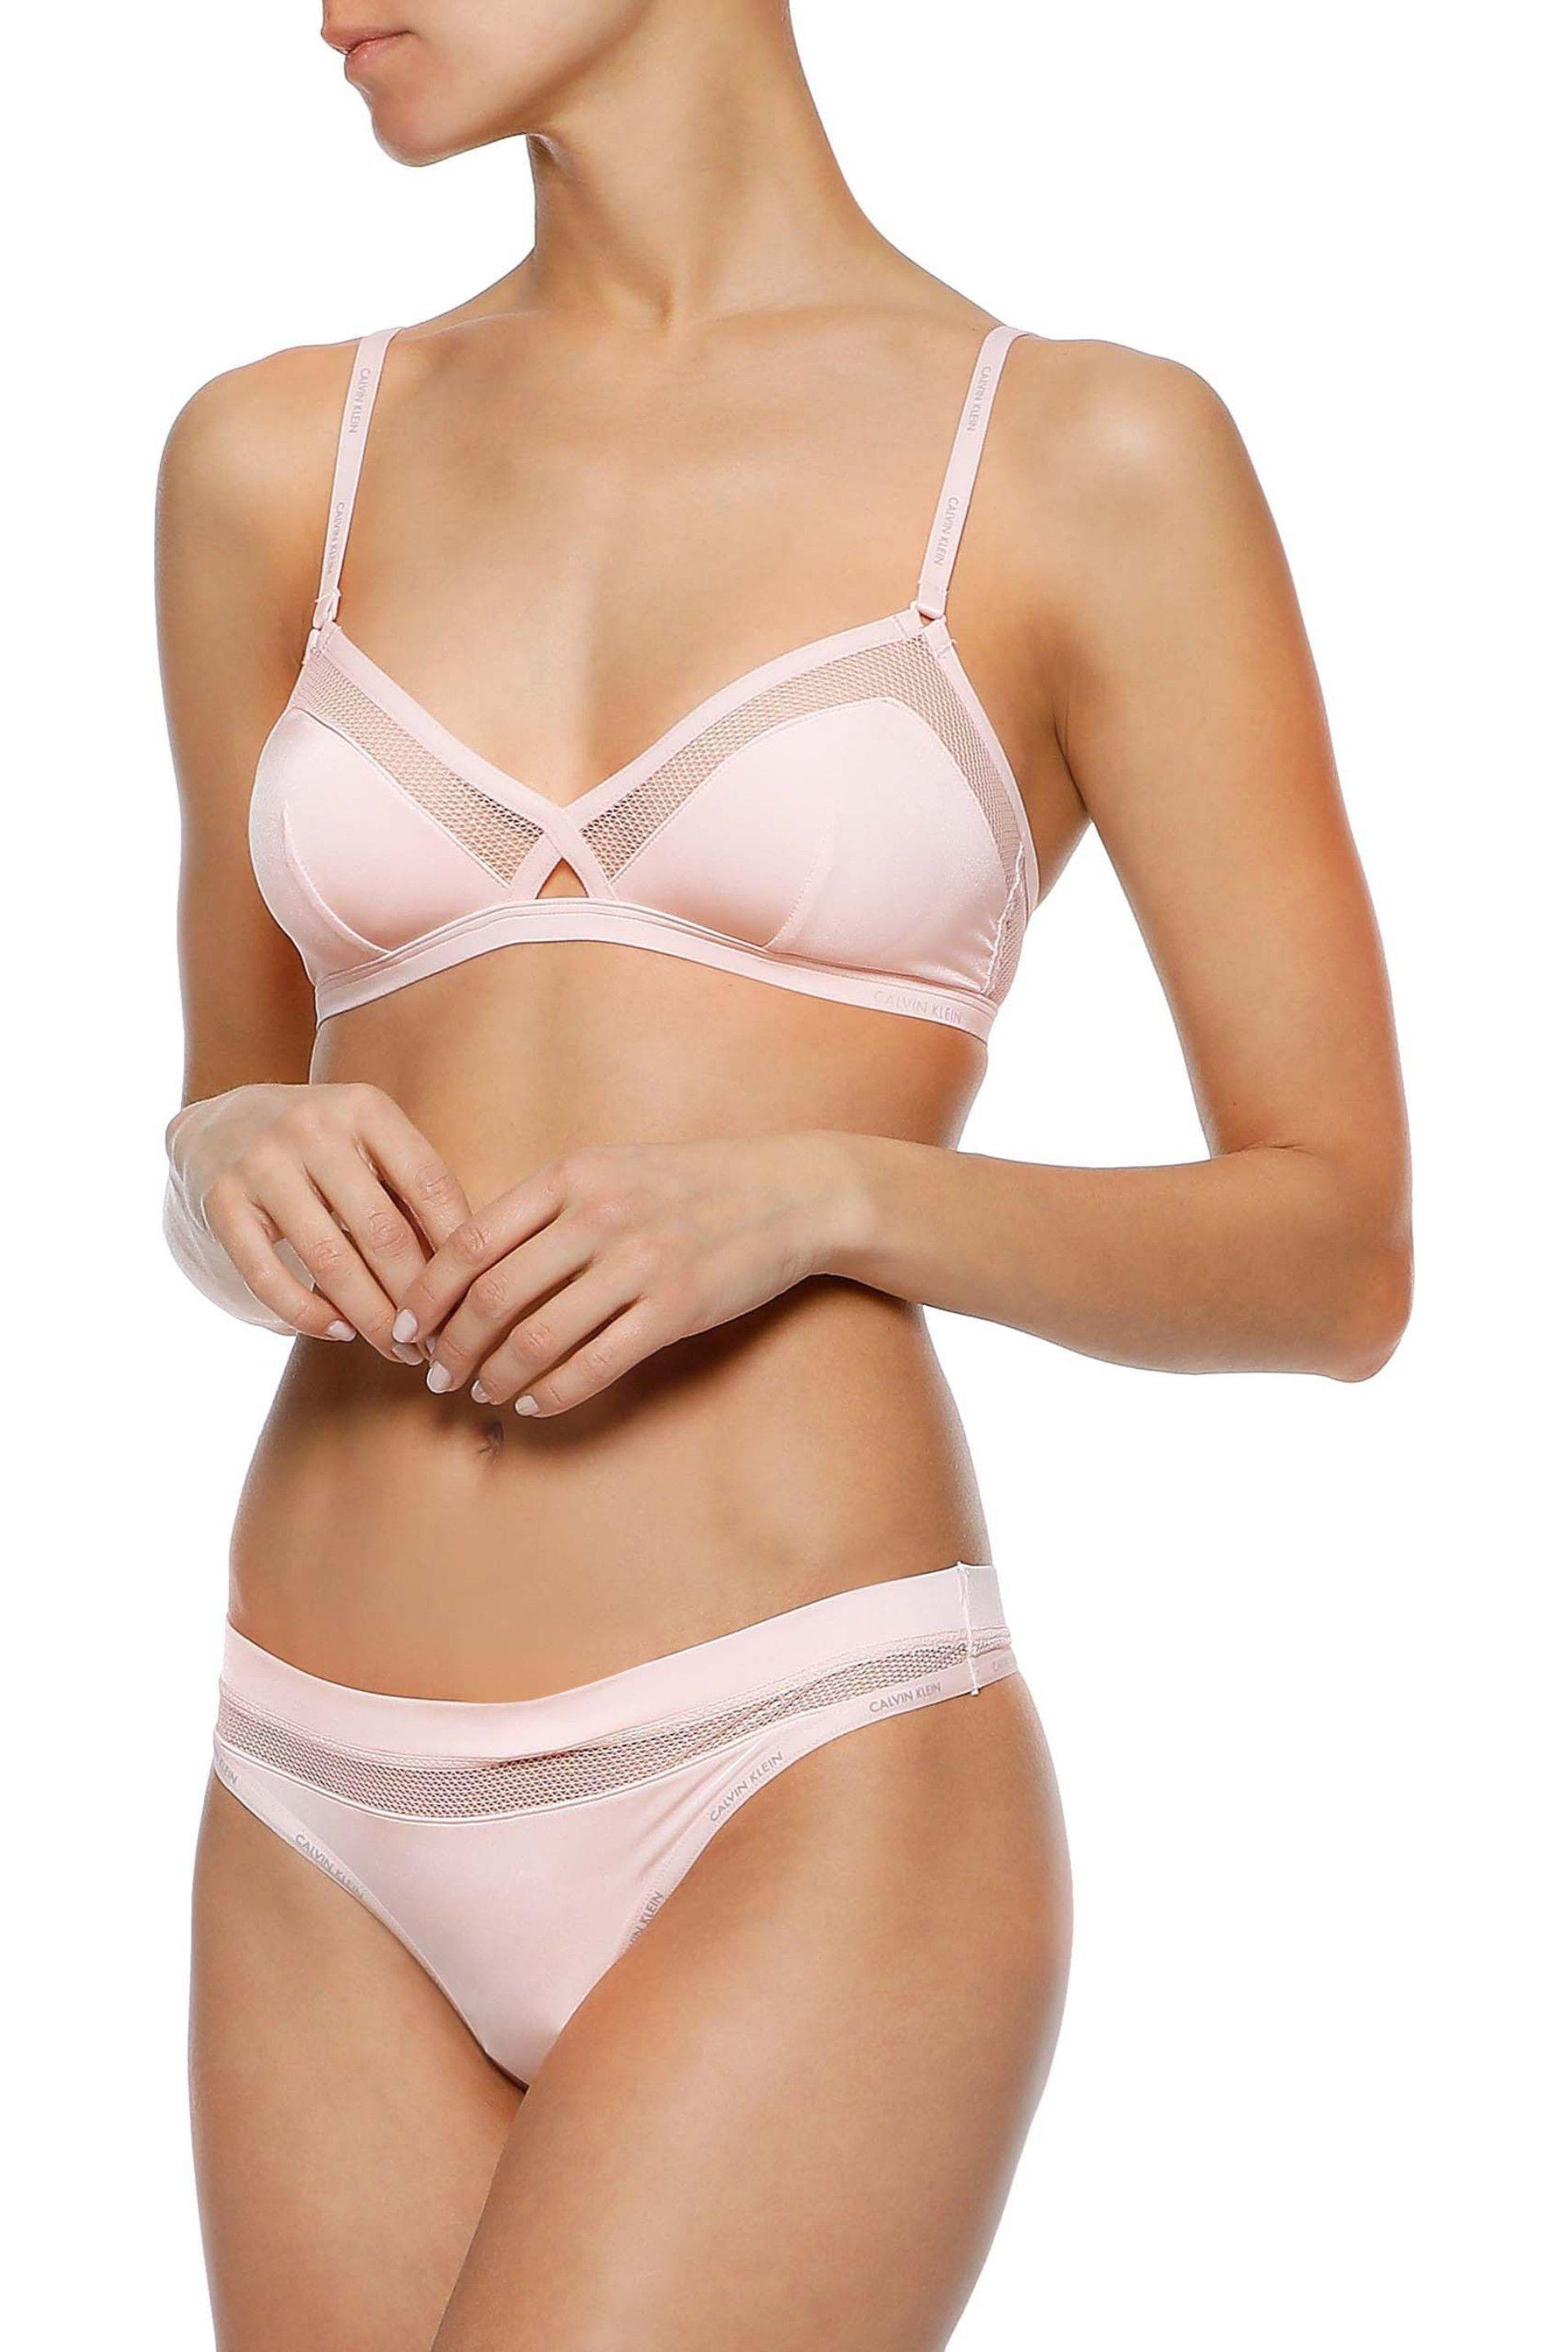 Calvin Klein - Woman Mesh-trimmed Stretch-jersey Soft-cup Triangle Bra  Pastel. View fullscreen 0c9a26026